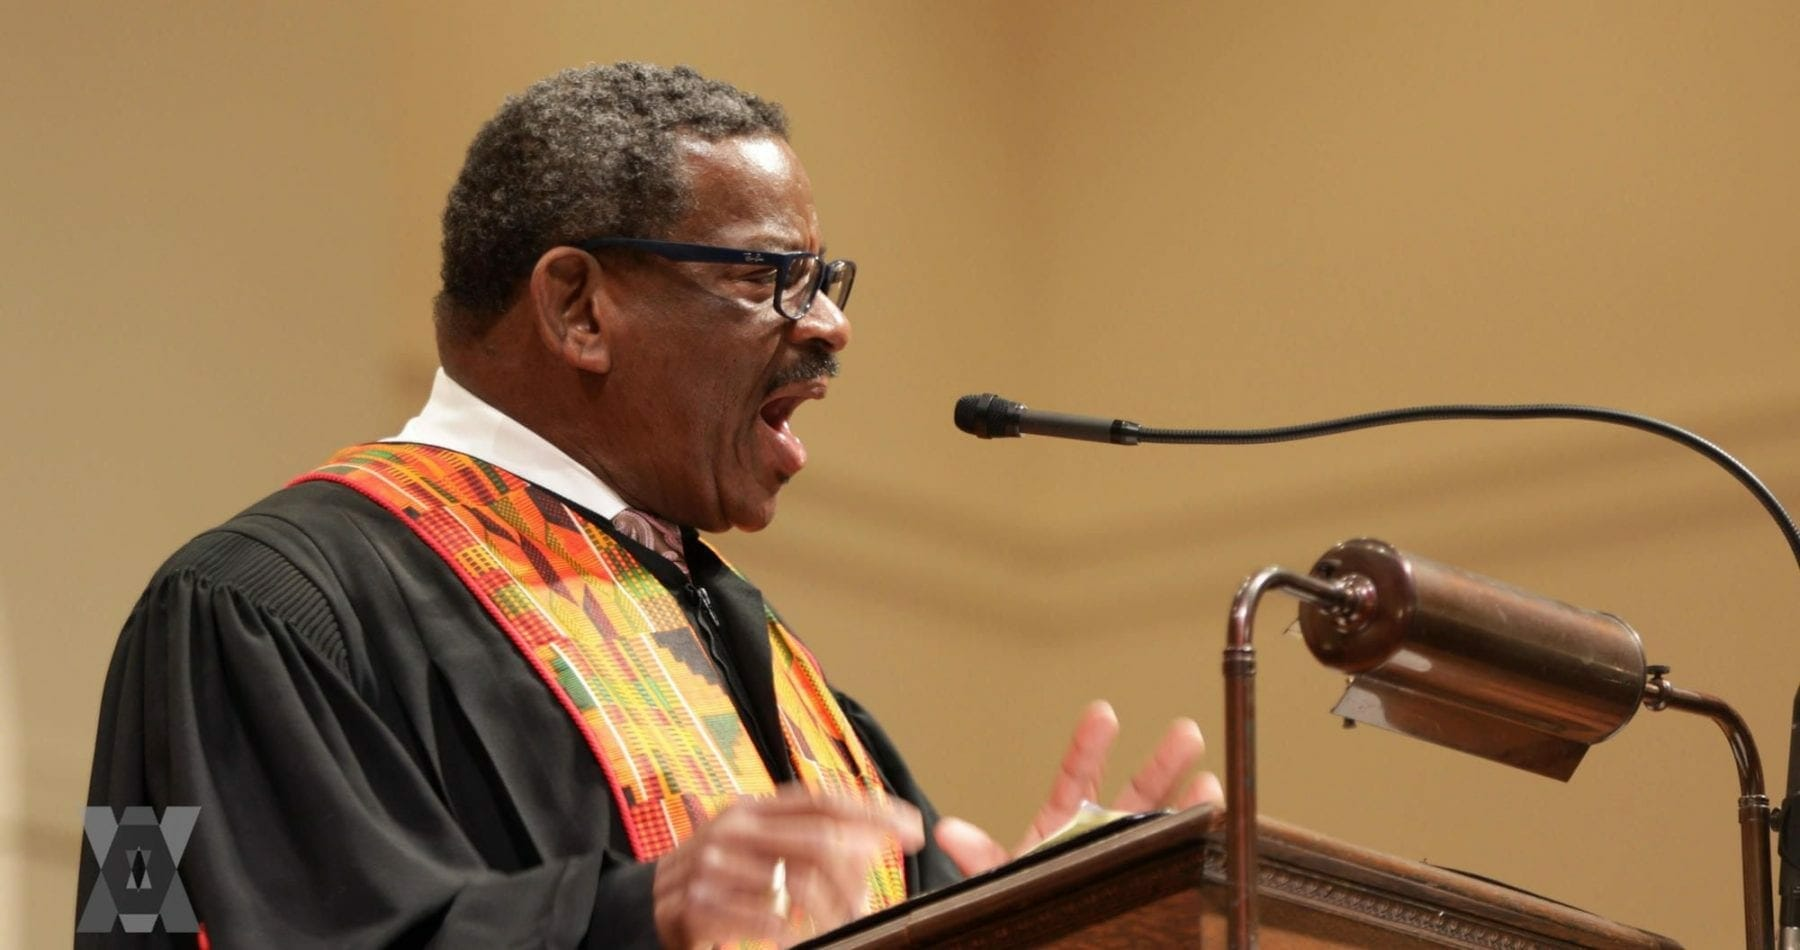 The Rev. Dwight Andrews in the pulpit of his church.